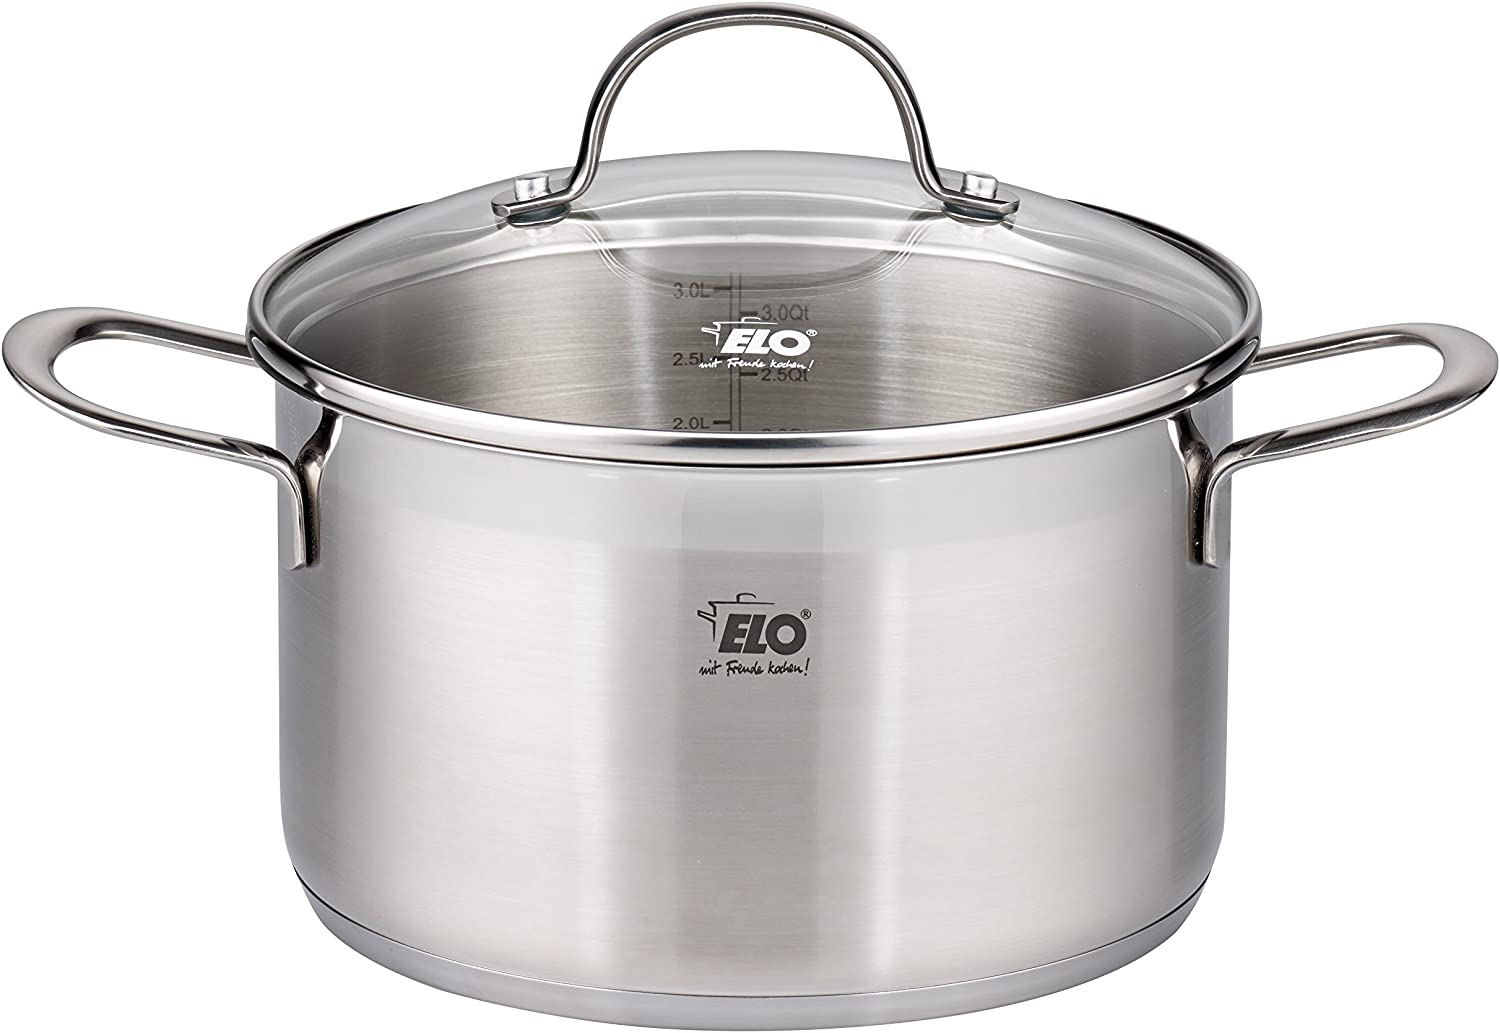 ELO Top Collection 18 10 Stainless Steel Kitchen Induction Cookware Pots and Pans Set with Shock Resistant Glass Lids and Integrated Measuring Scale, 9-Piece Renewed